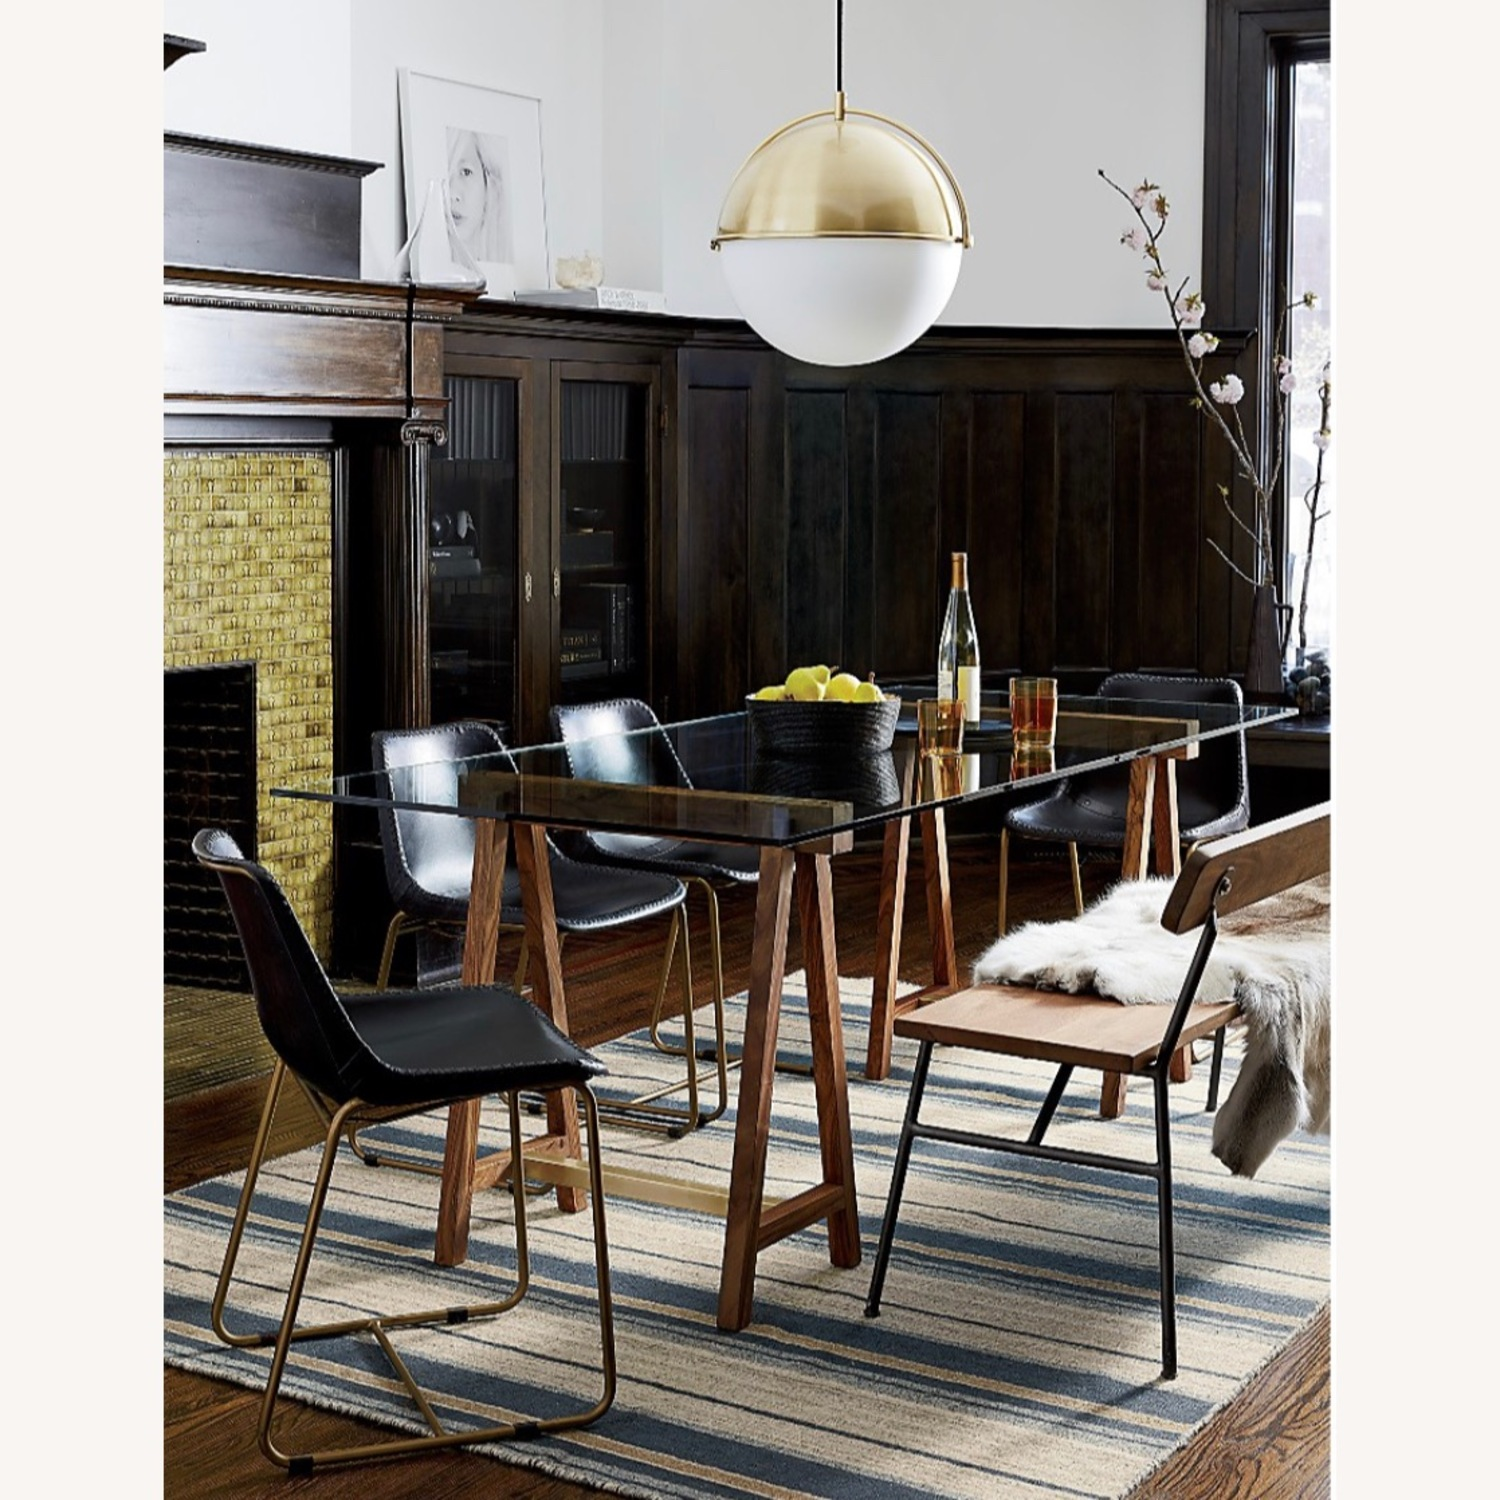 CB2 Roadhouse Black Leather Dining Chairs - image-6